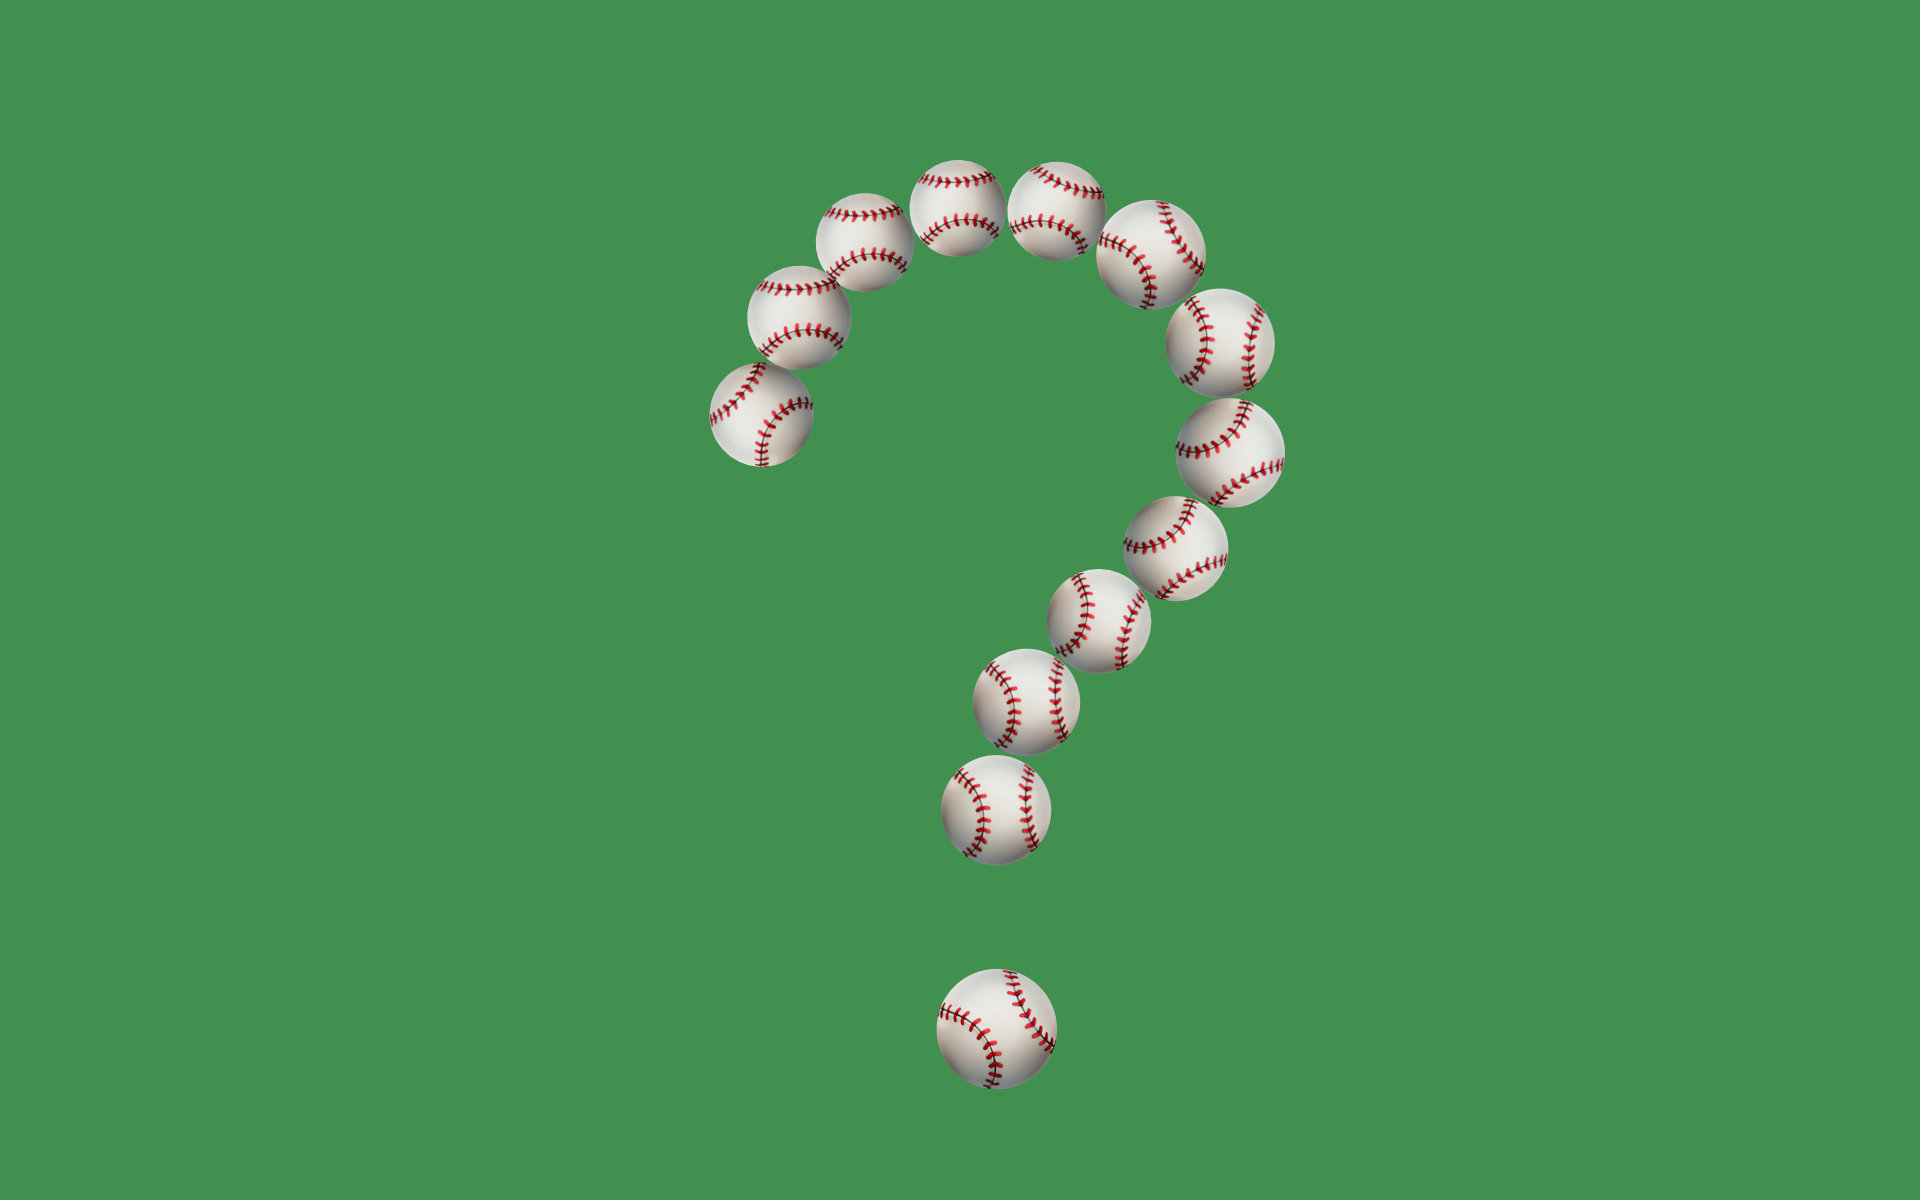 Baseball emojis arranged in the shape of a question mark.